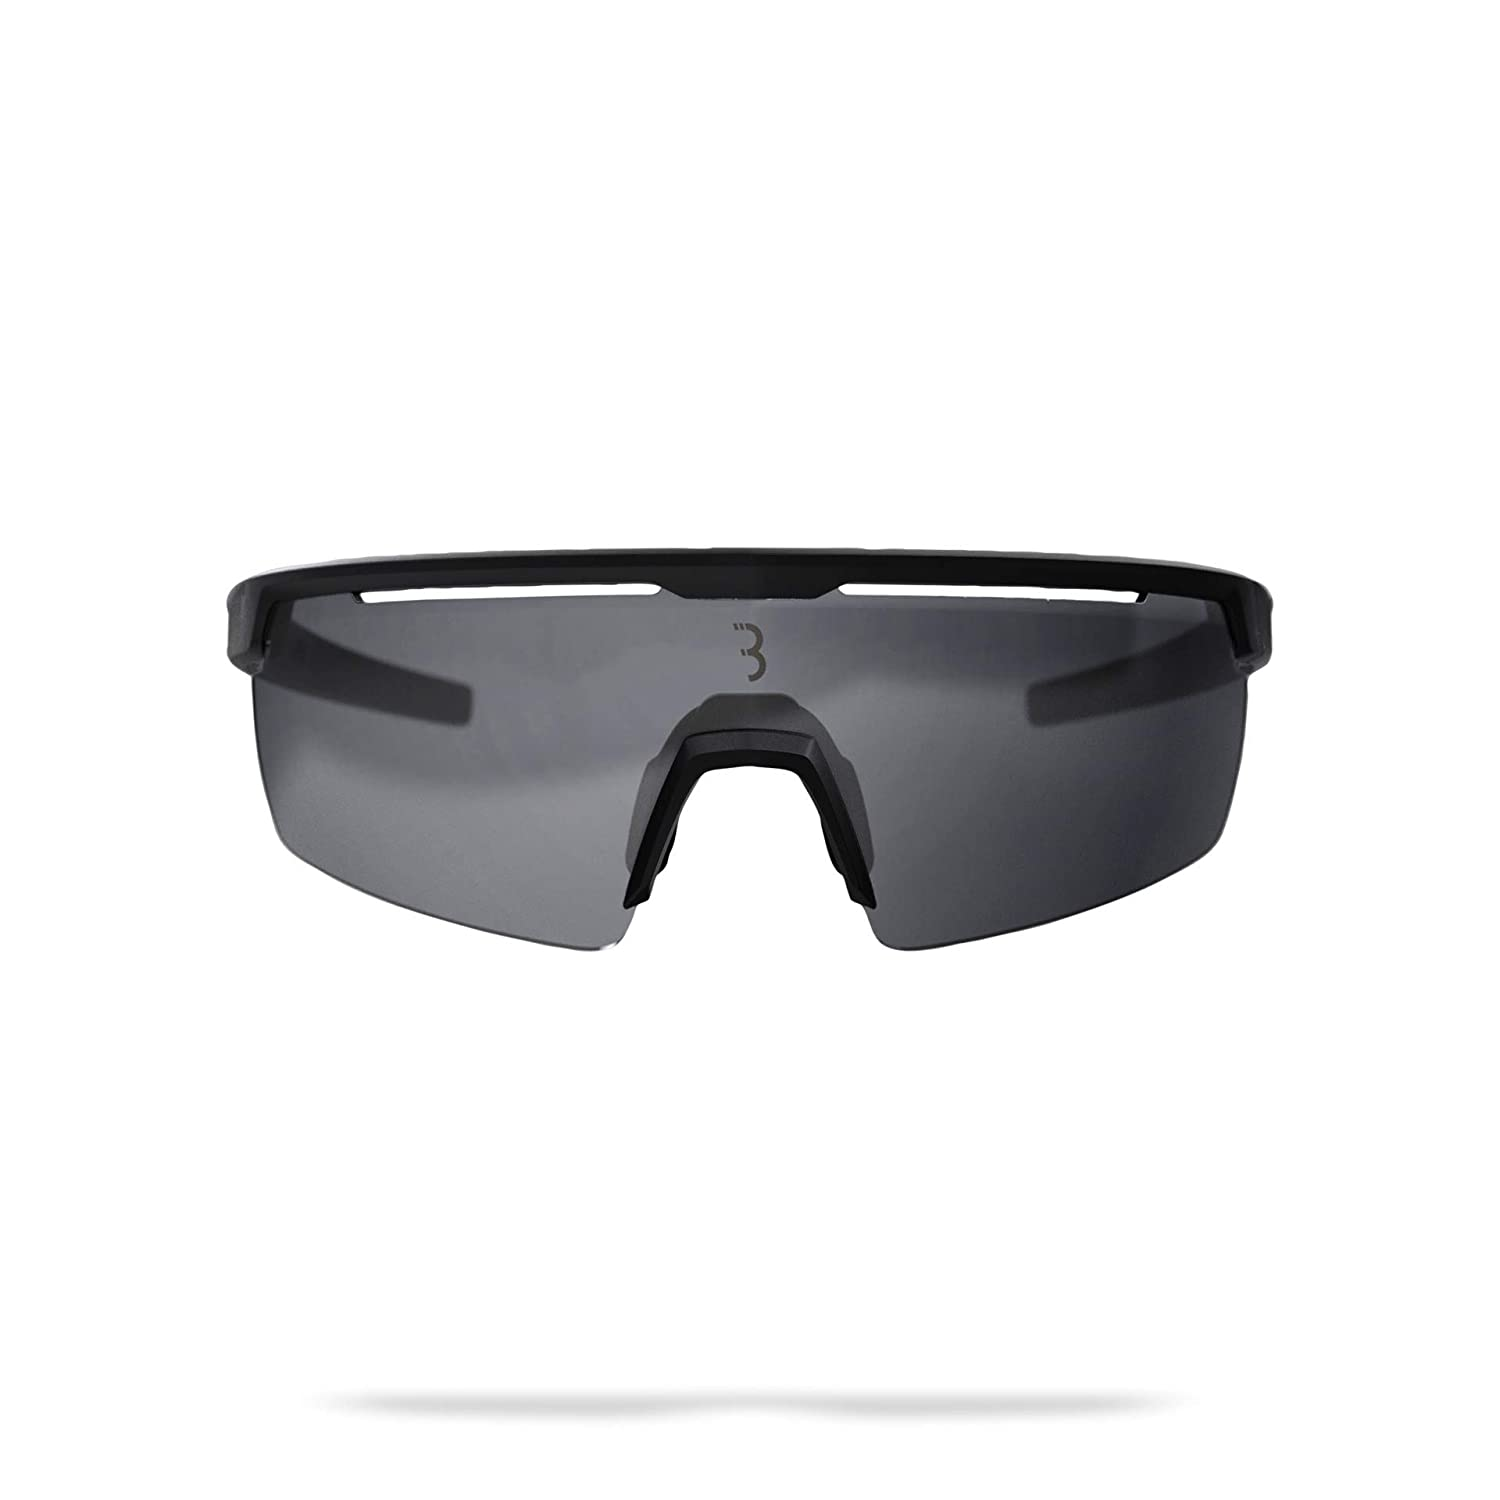 3e597a95fbc Amazon.com   BBB Cycling BSG-57 Avenger Sport Glasses with Interchangeable  Lenses for Biking and Sun Protection (Matt Black)   Sports   Outdoors